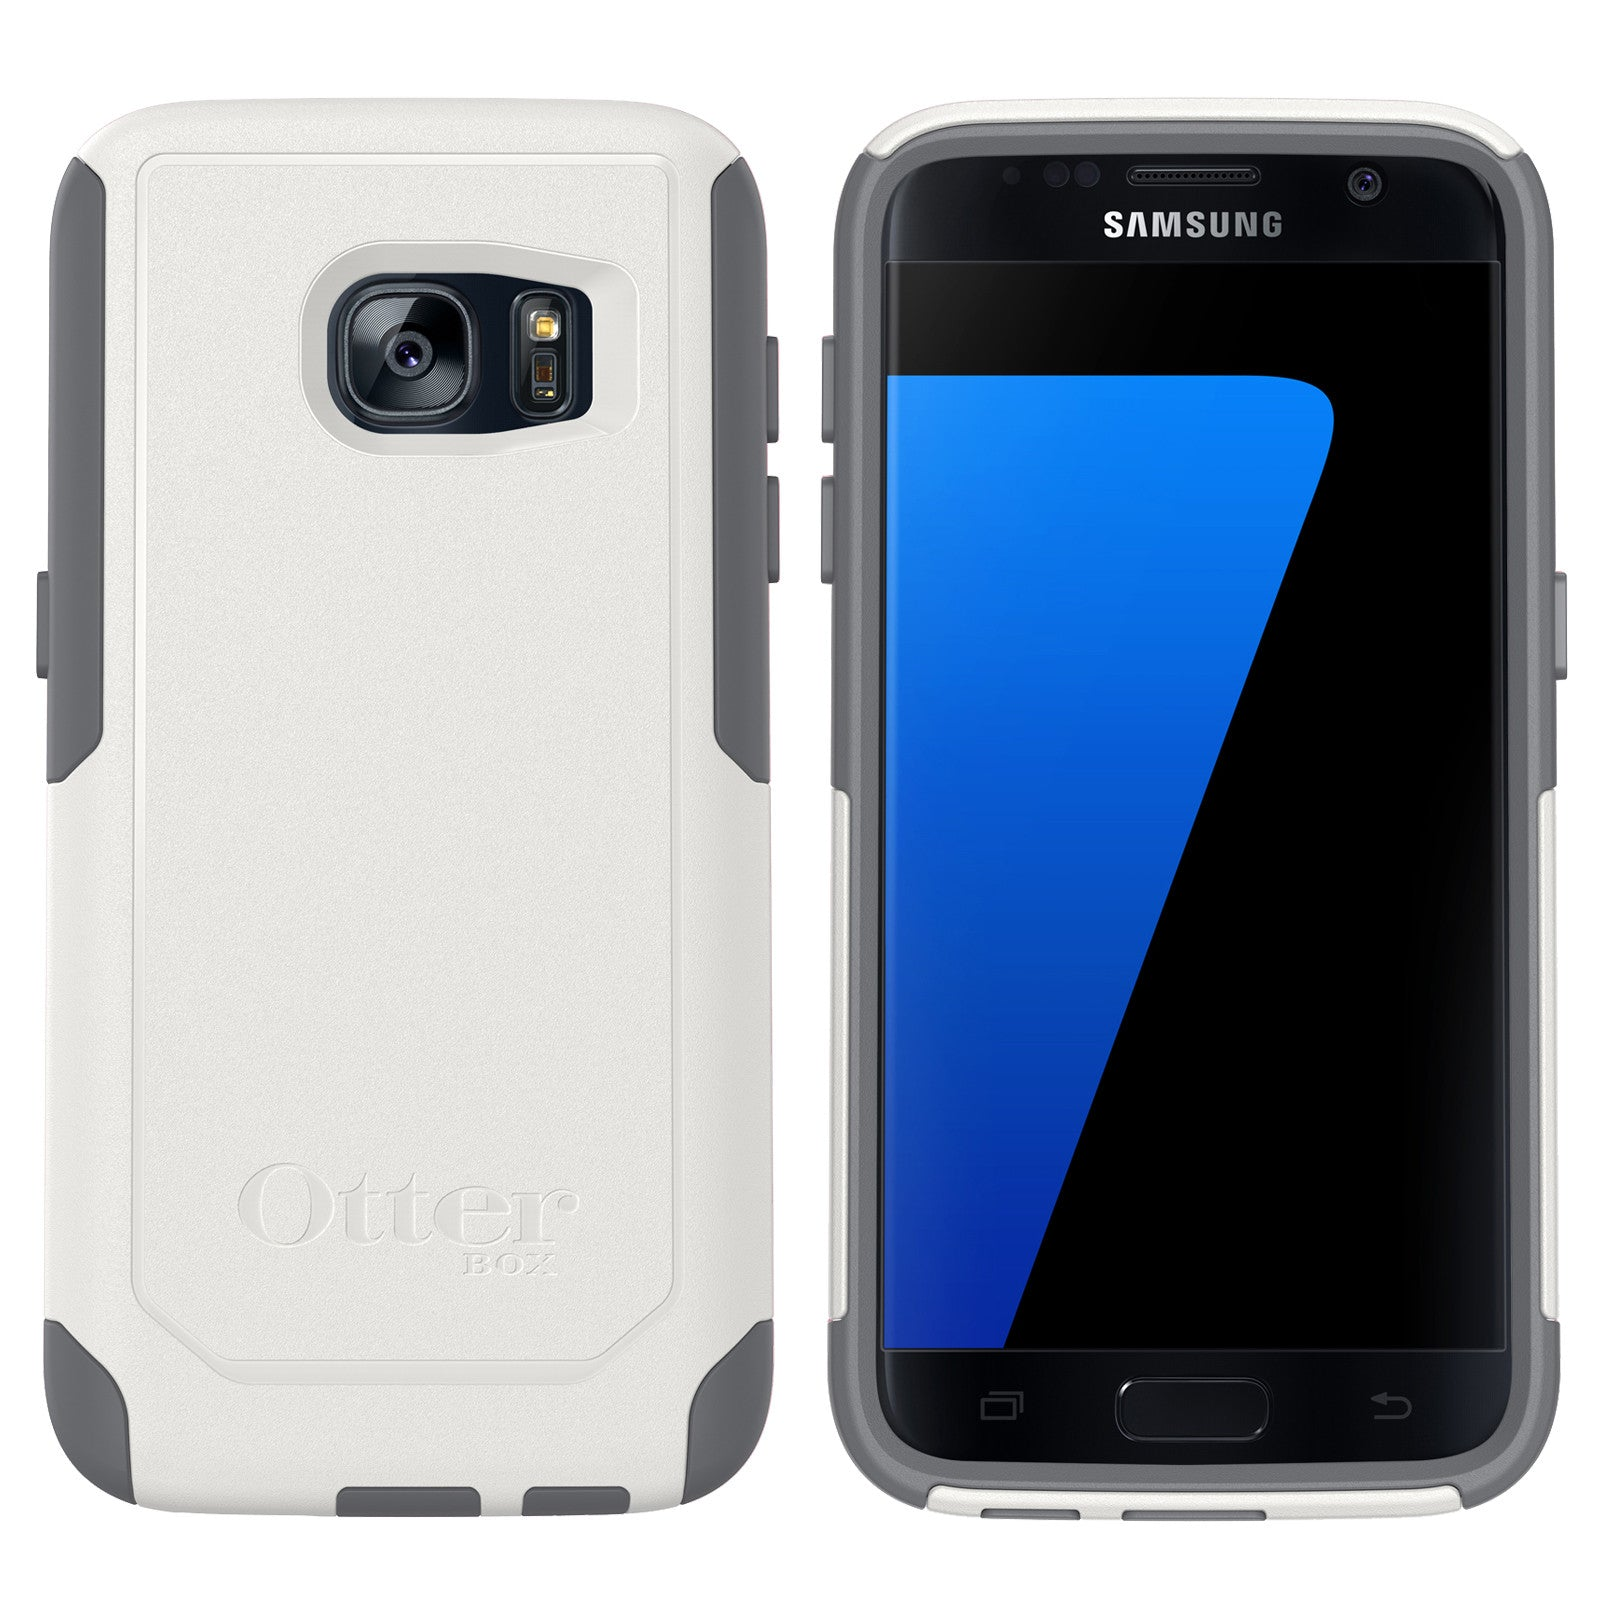 huge discount e0eed 2ce6e Otterbox Commuter Case For Samsung Galaxy S7 EDGE